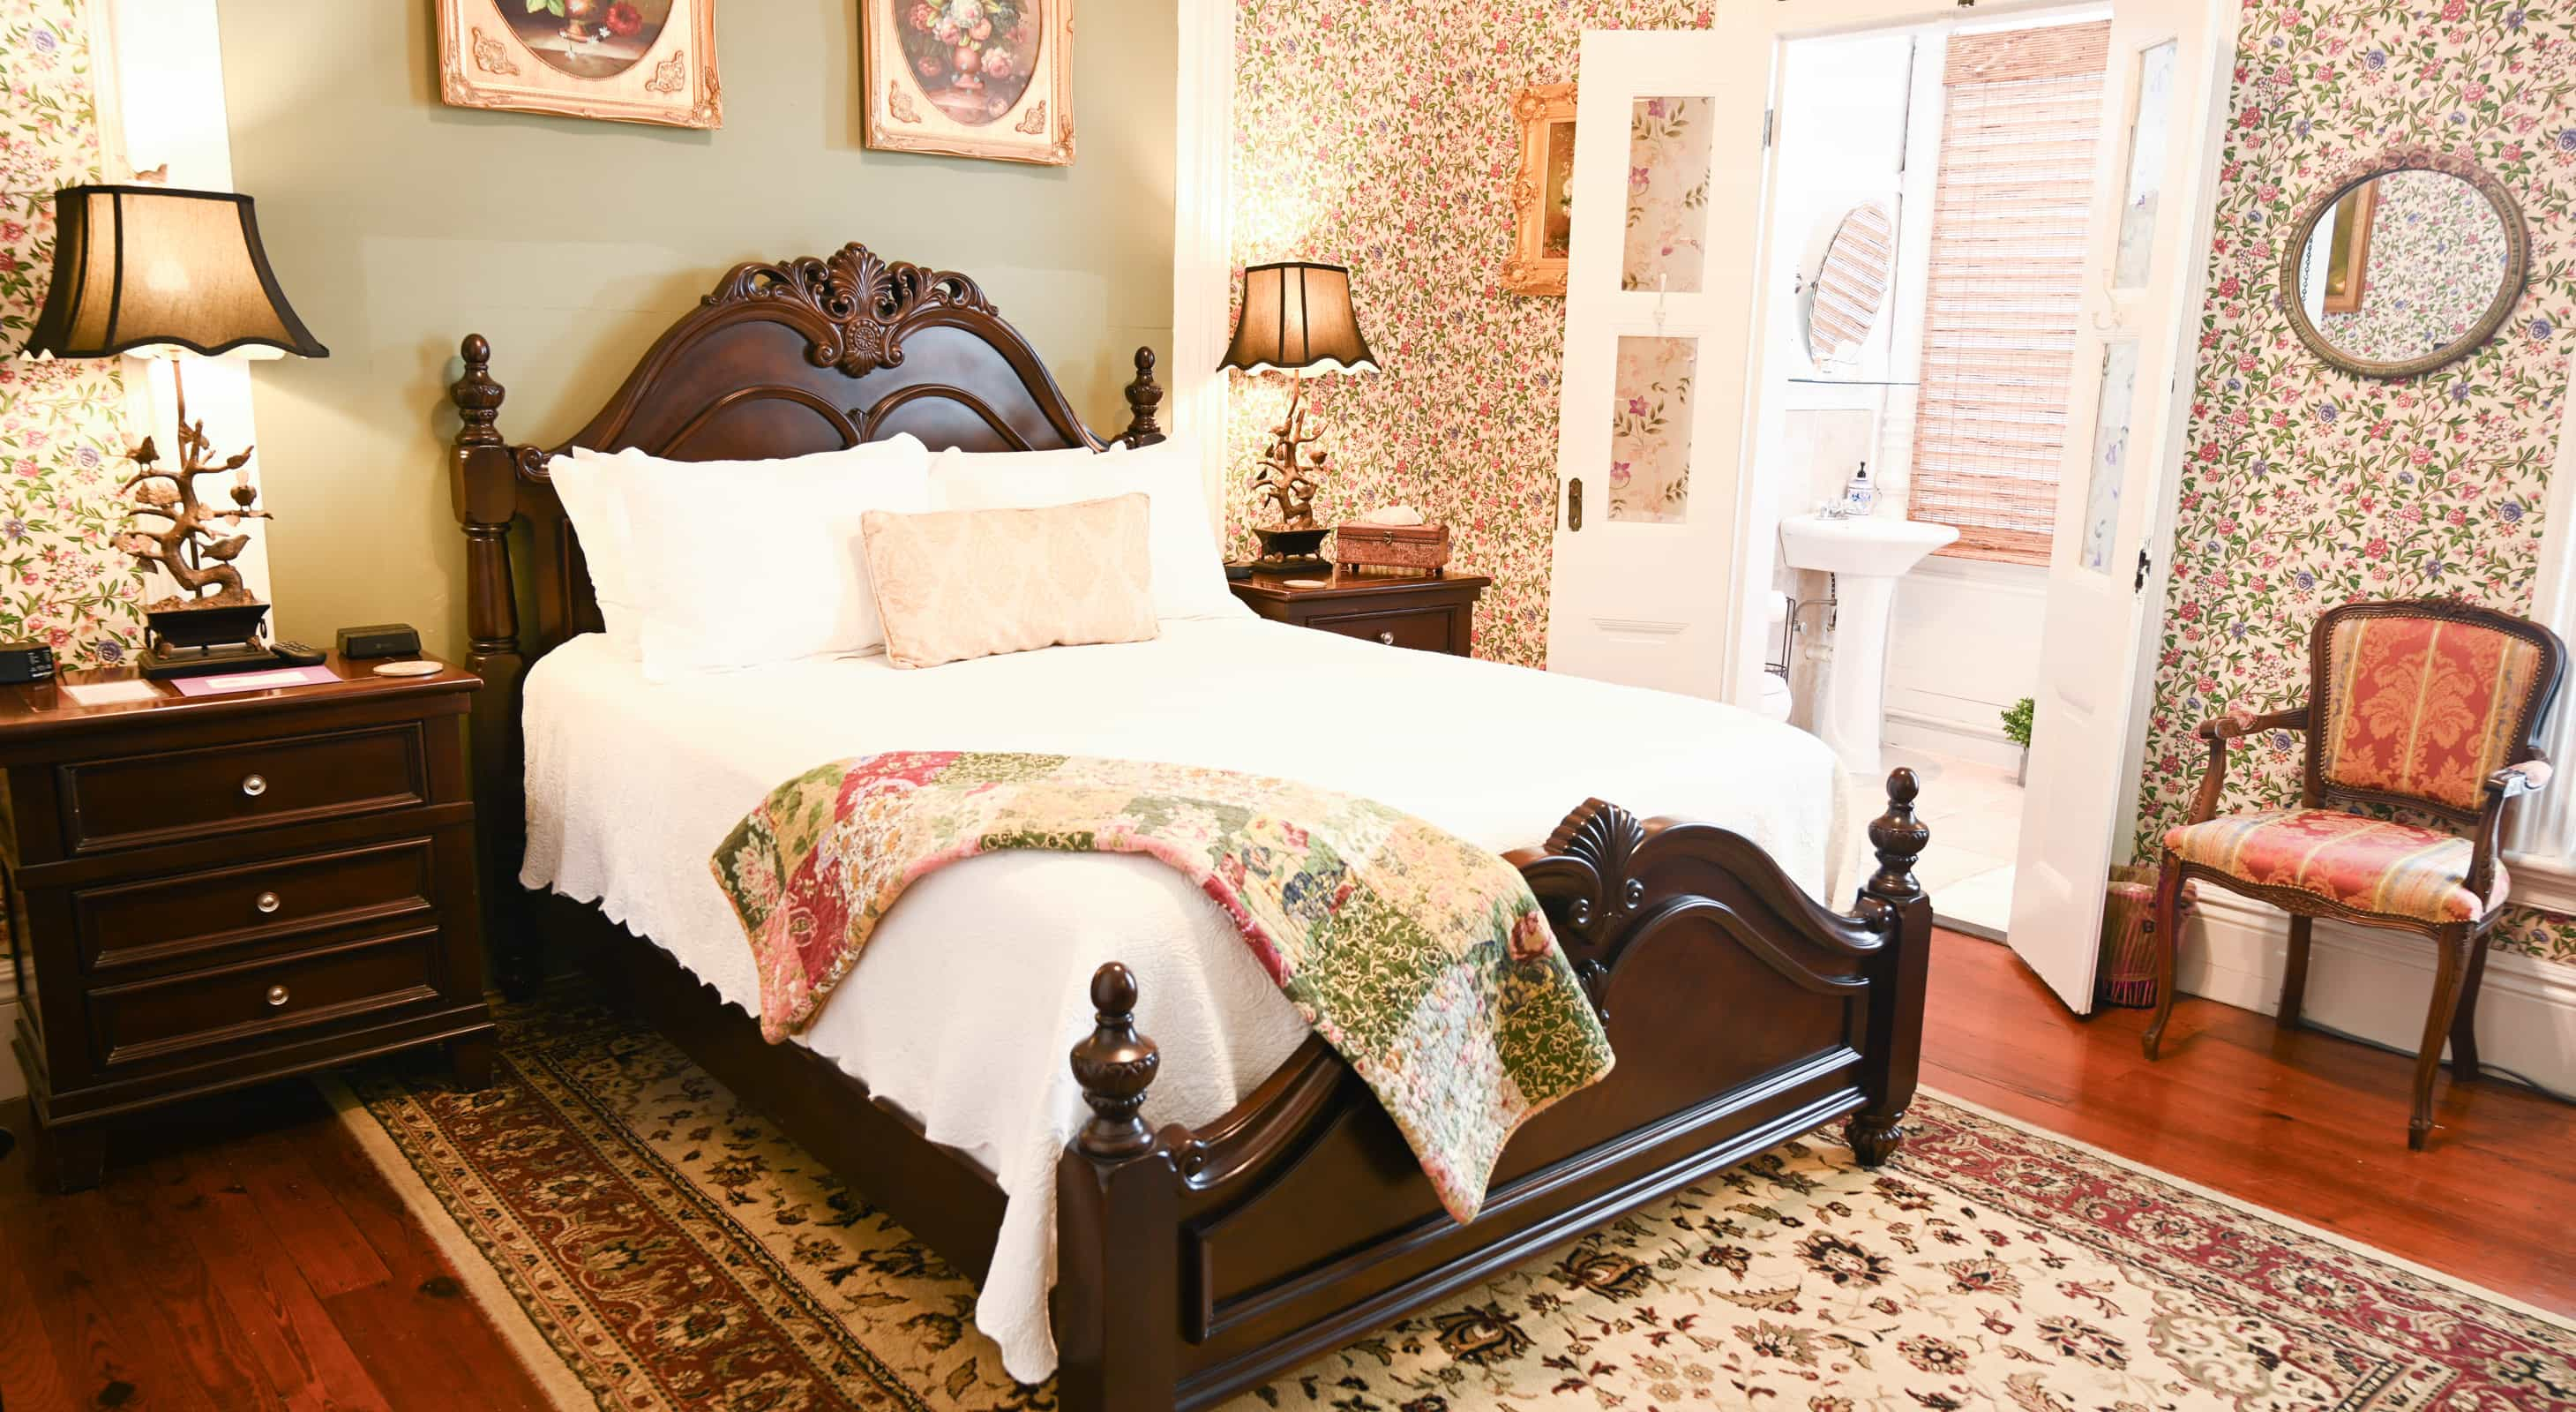 Garden Room Bed - Romantic Key West Accommodations in Old Town